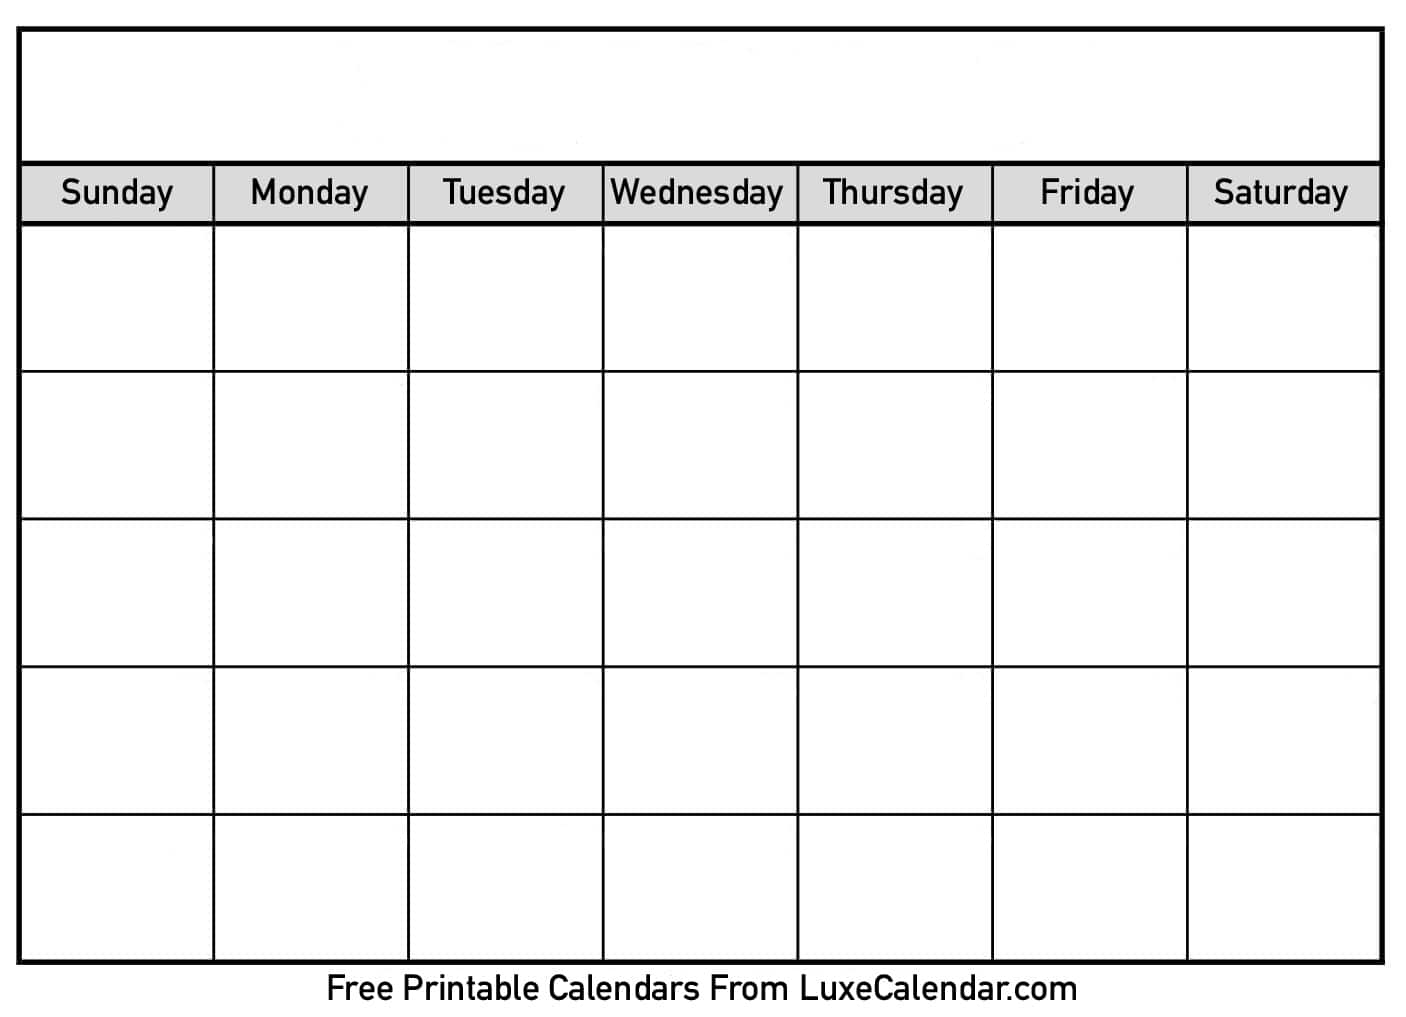 Blank Printable Calendar - Luxe Calendar pertaining to Fill In Calendar Template Printable